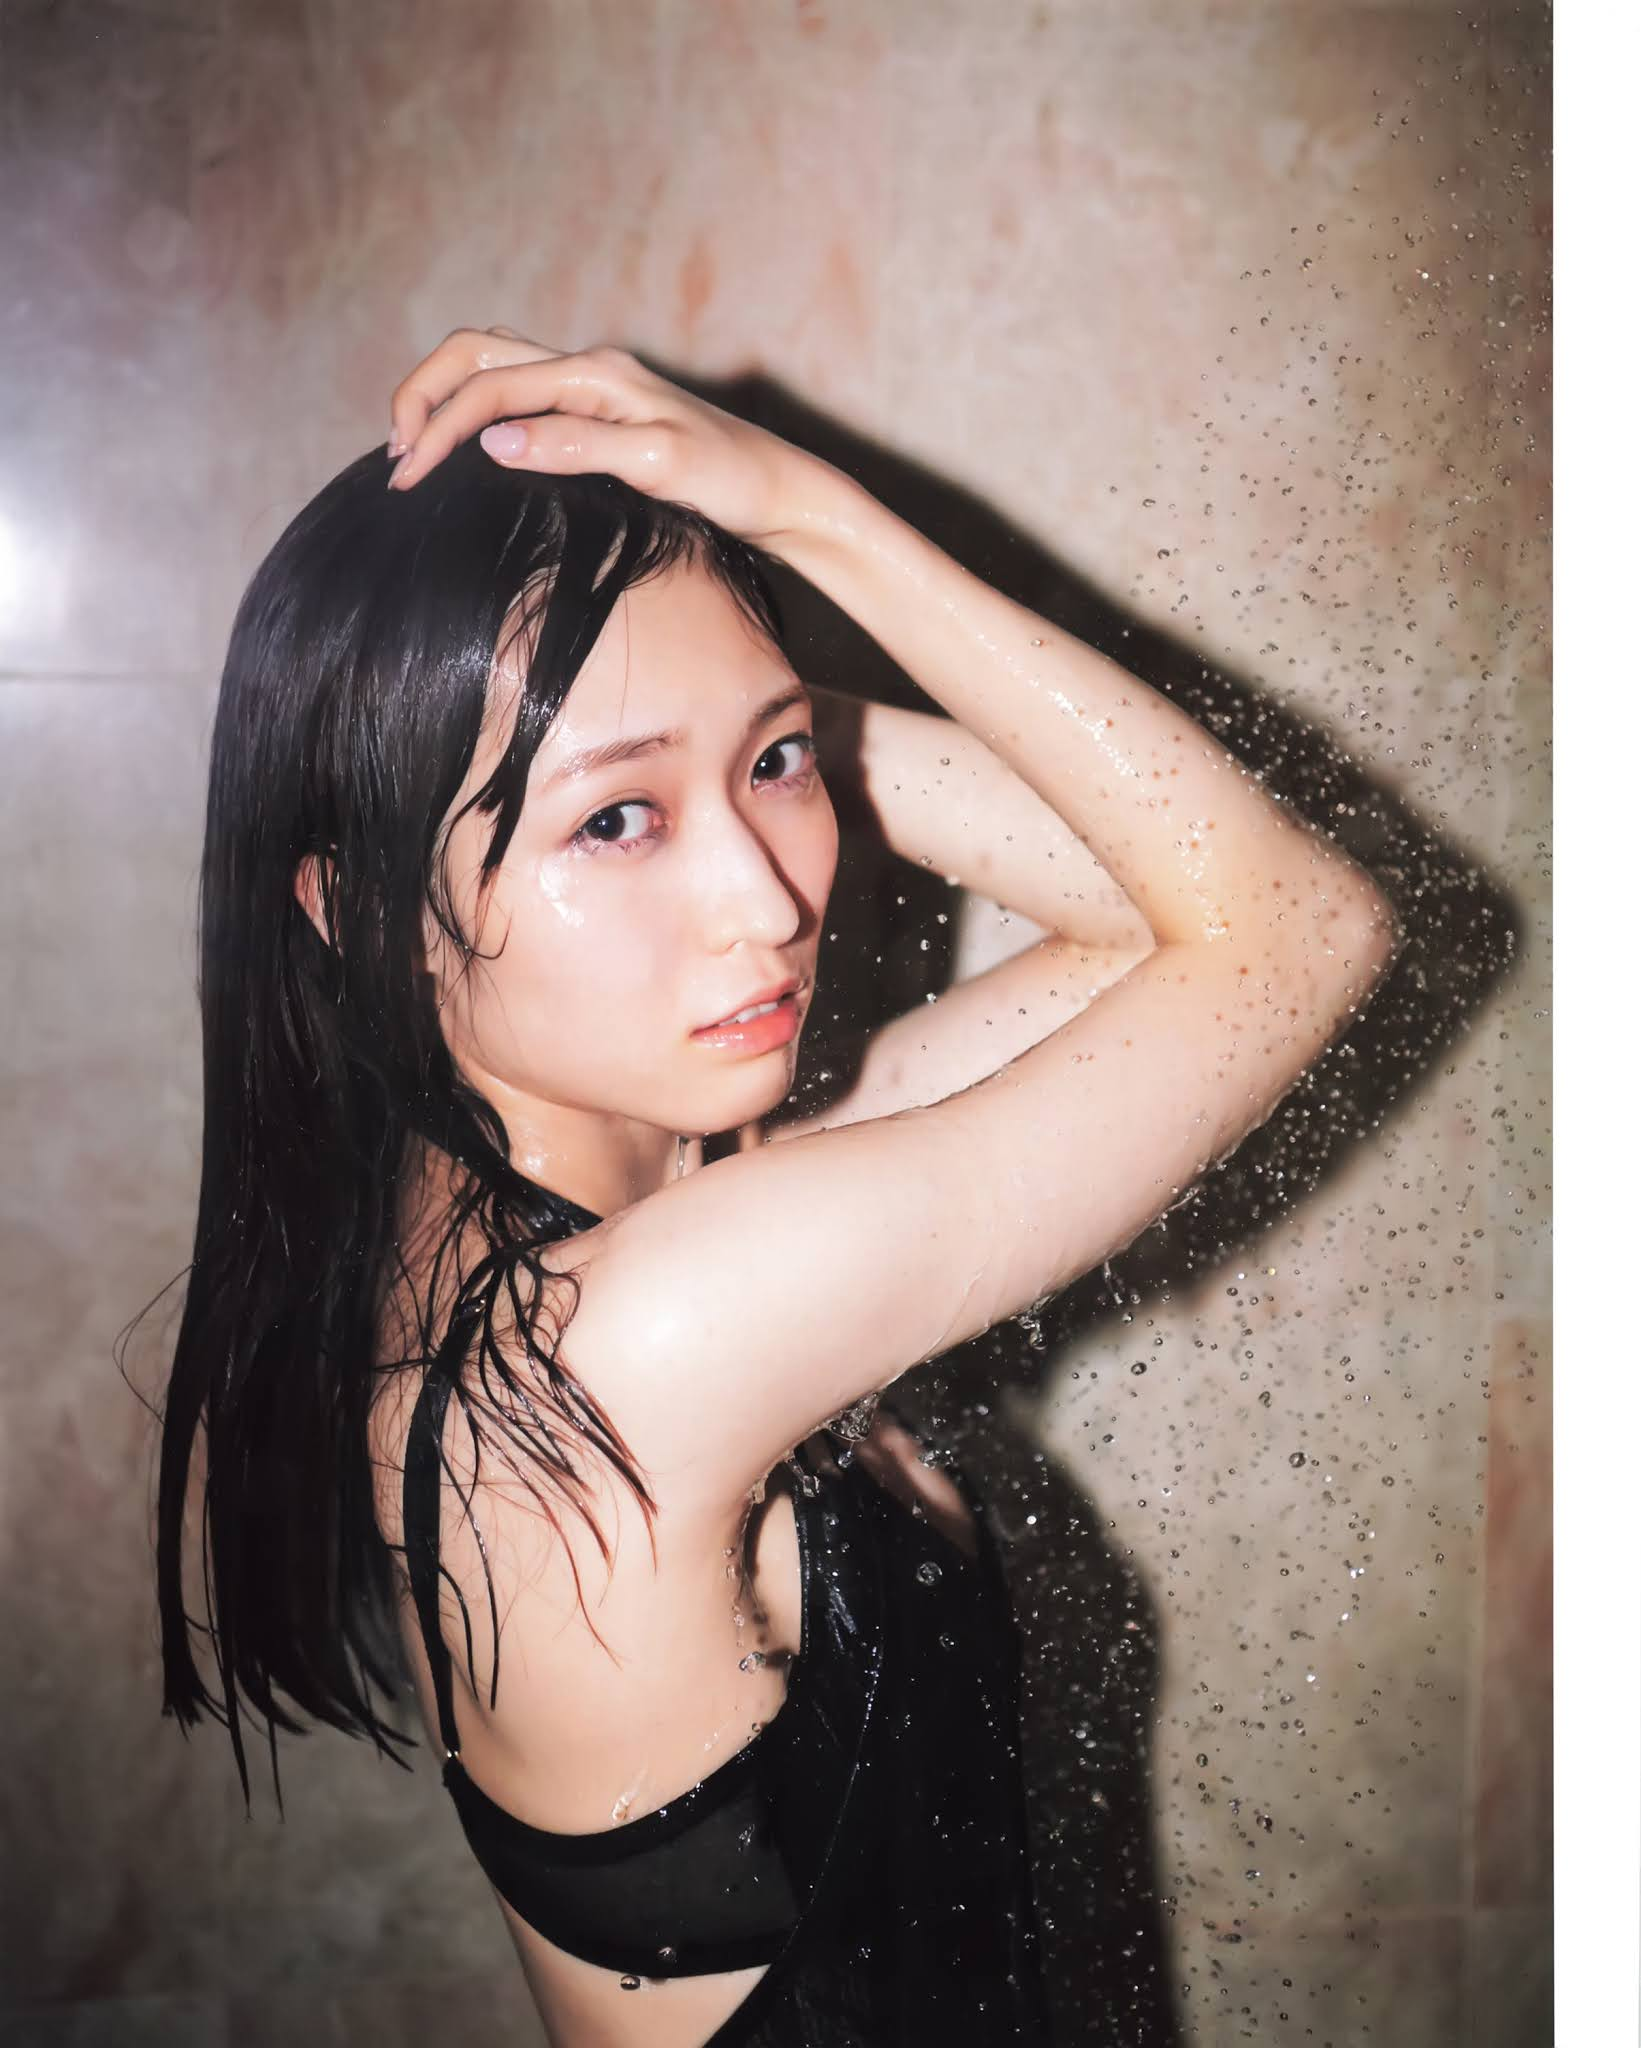 23yearold body fascinated in Hawaii Maho Yamaguchi130